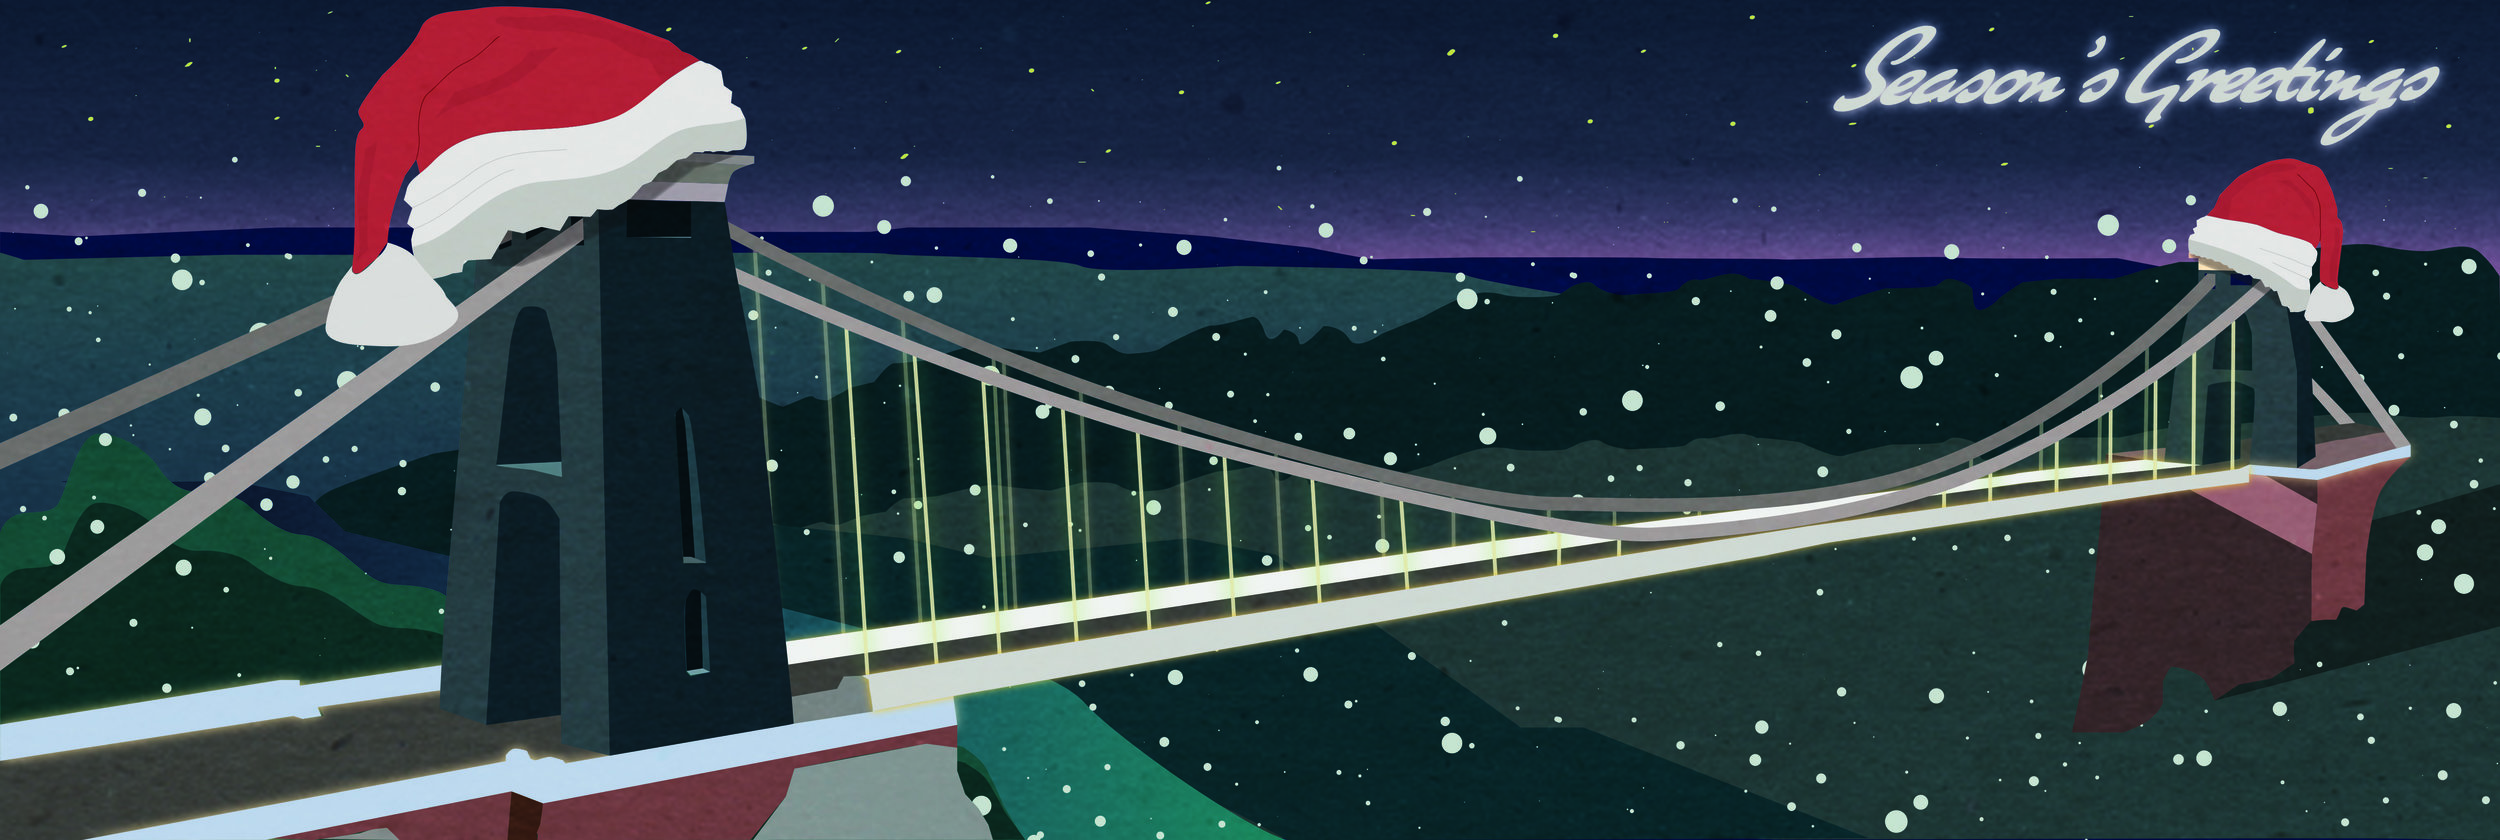 Christmas Card created for Bristol UWE email greetings.